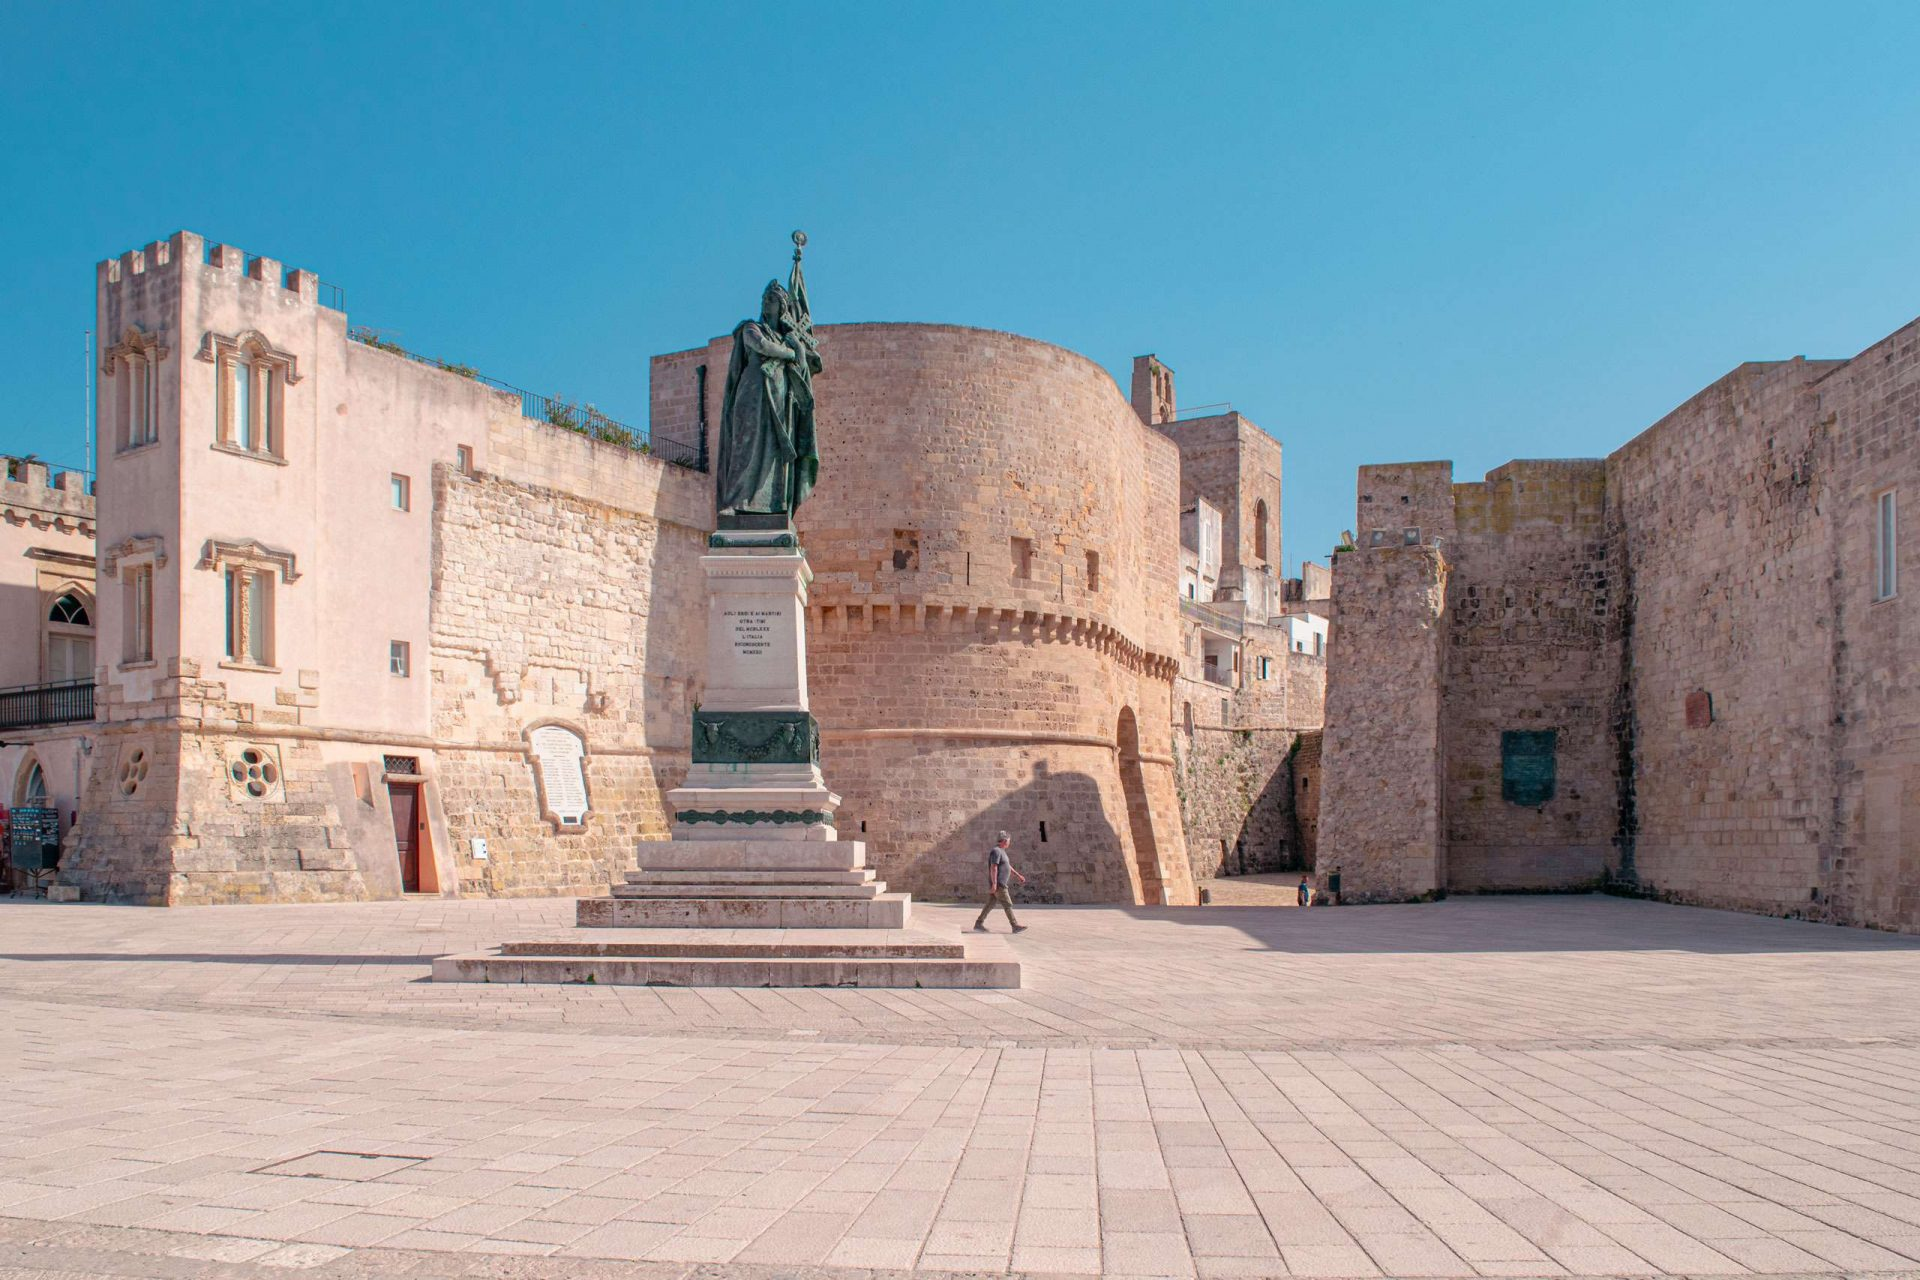 Otranto Castle - stop-over of Road Trip in Salento